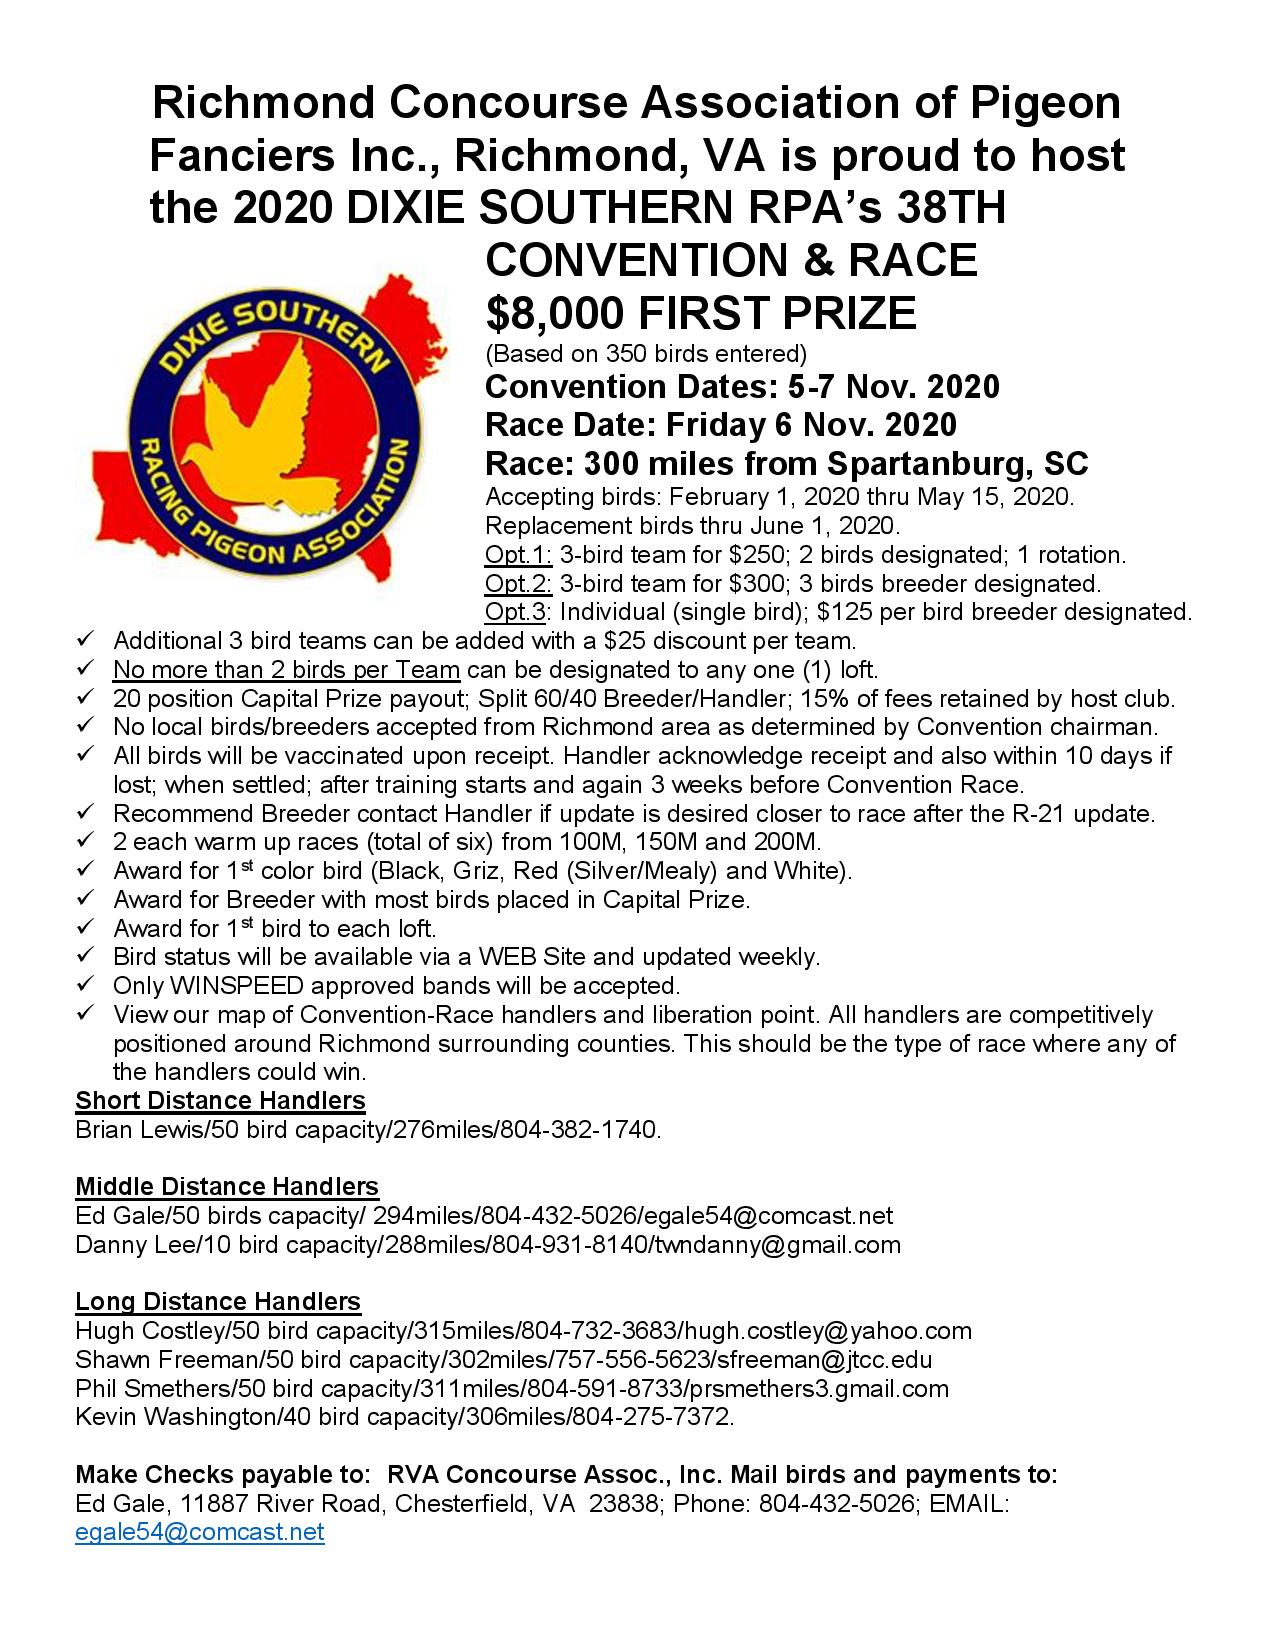 DIXIE SOUTHERN  CONVENTION & RACE